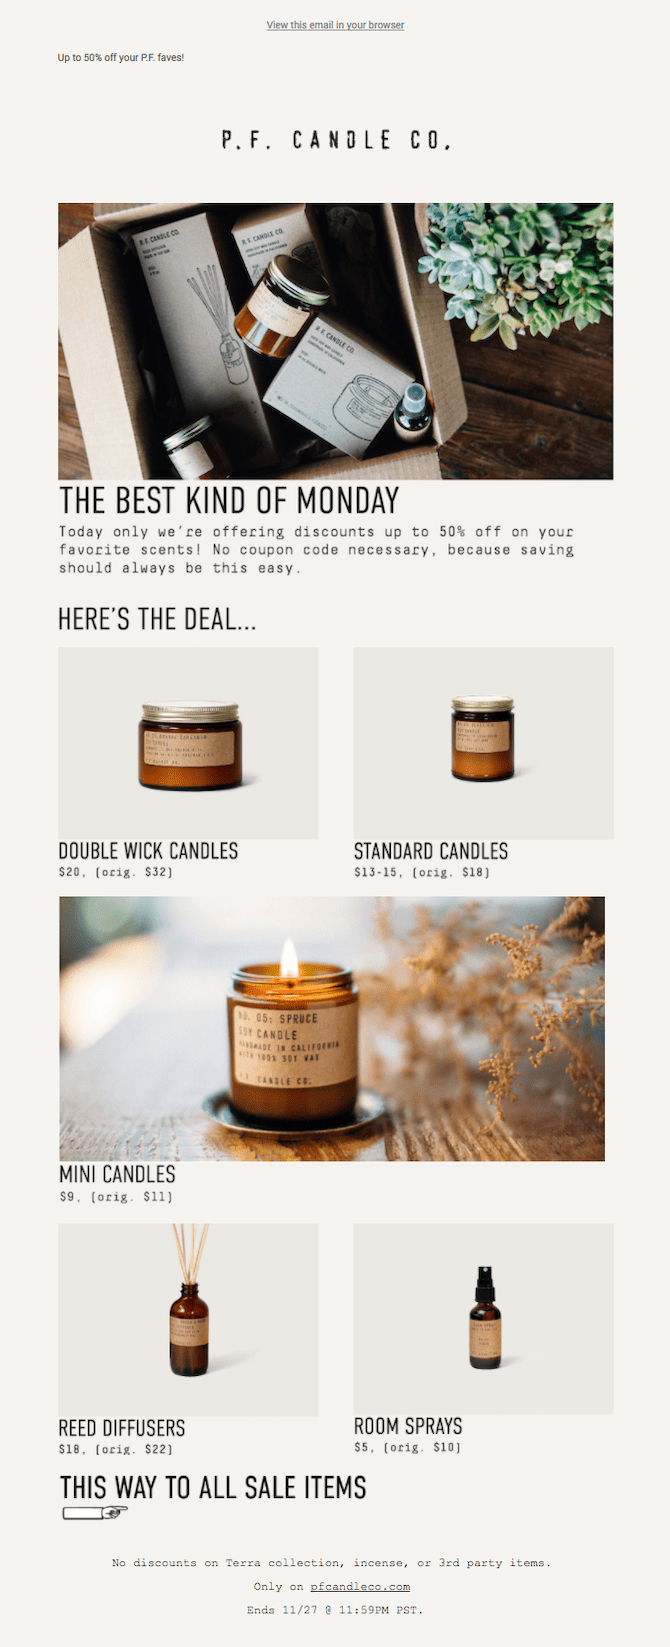 p.f. candle co. cyber monday email example